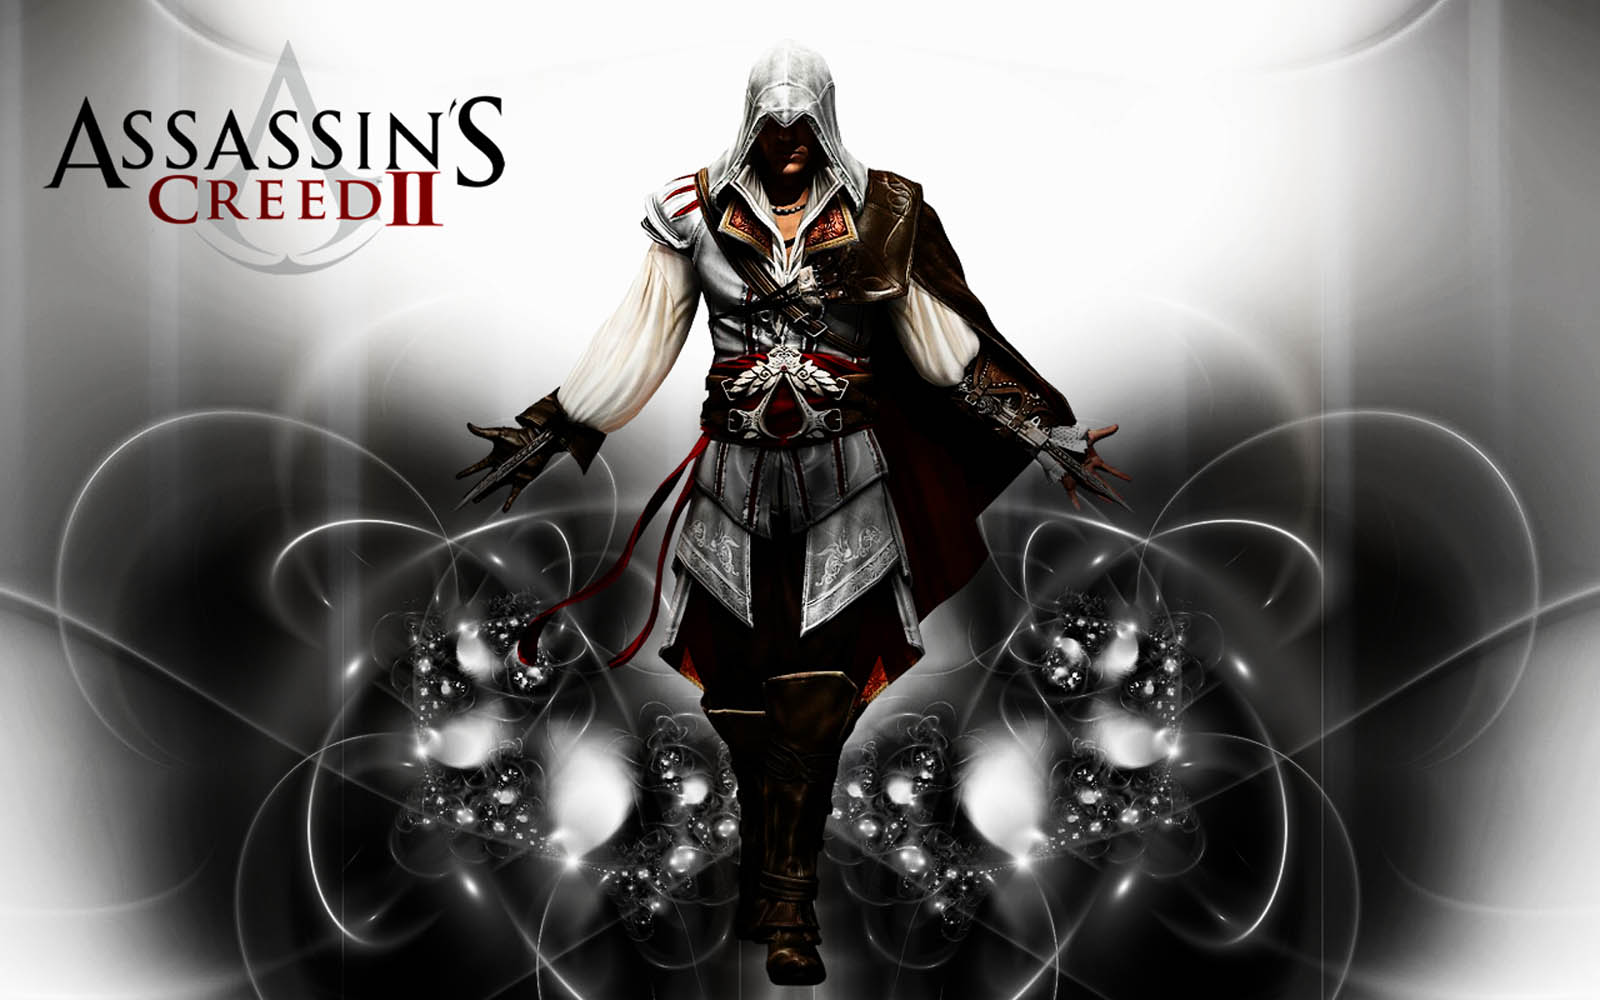 ezio assassins creed ii - photo #30